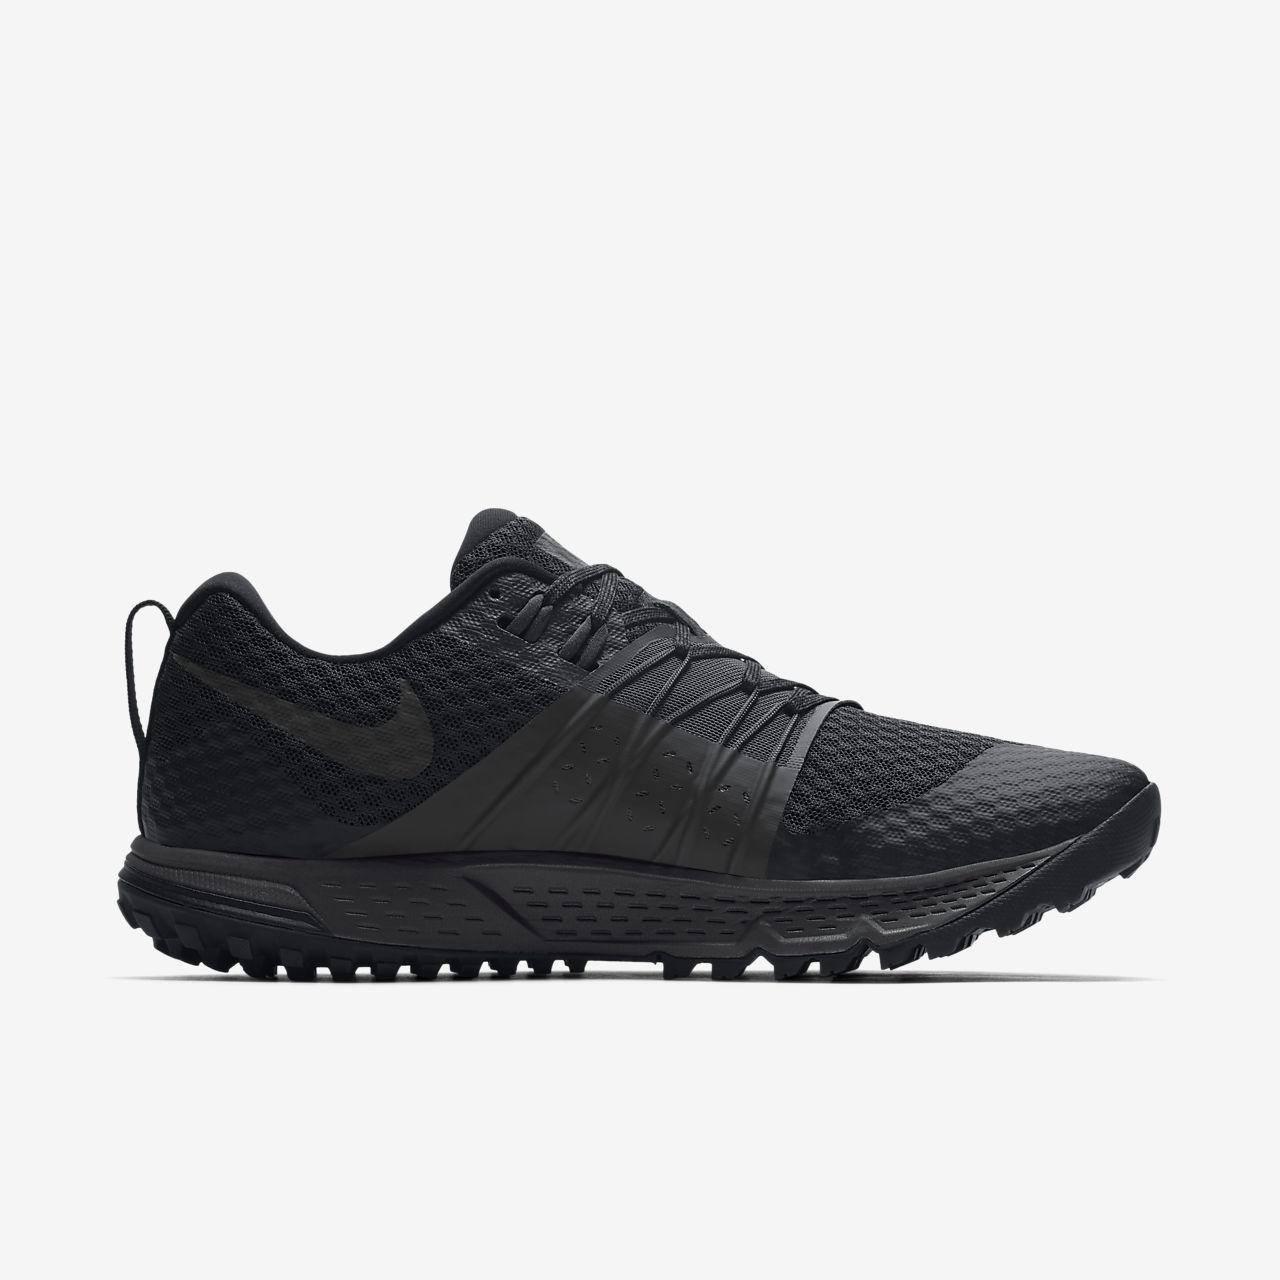 Running Trail Shoes Nike